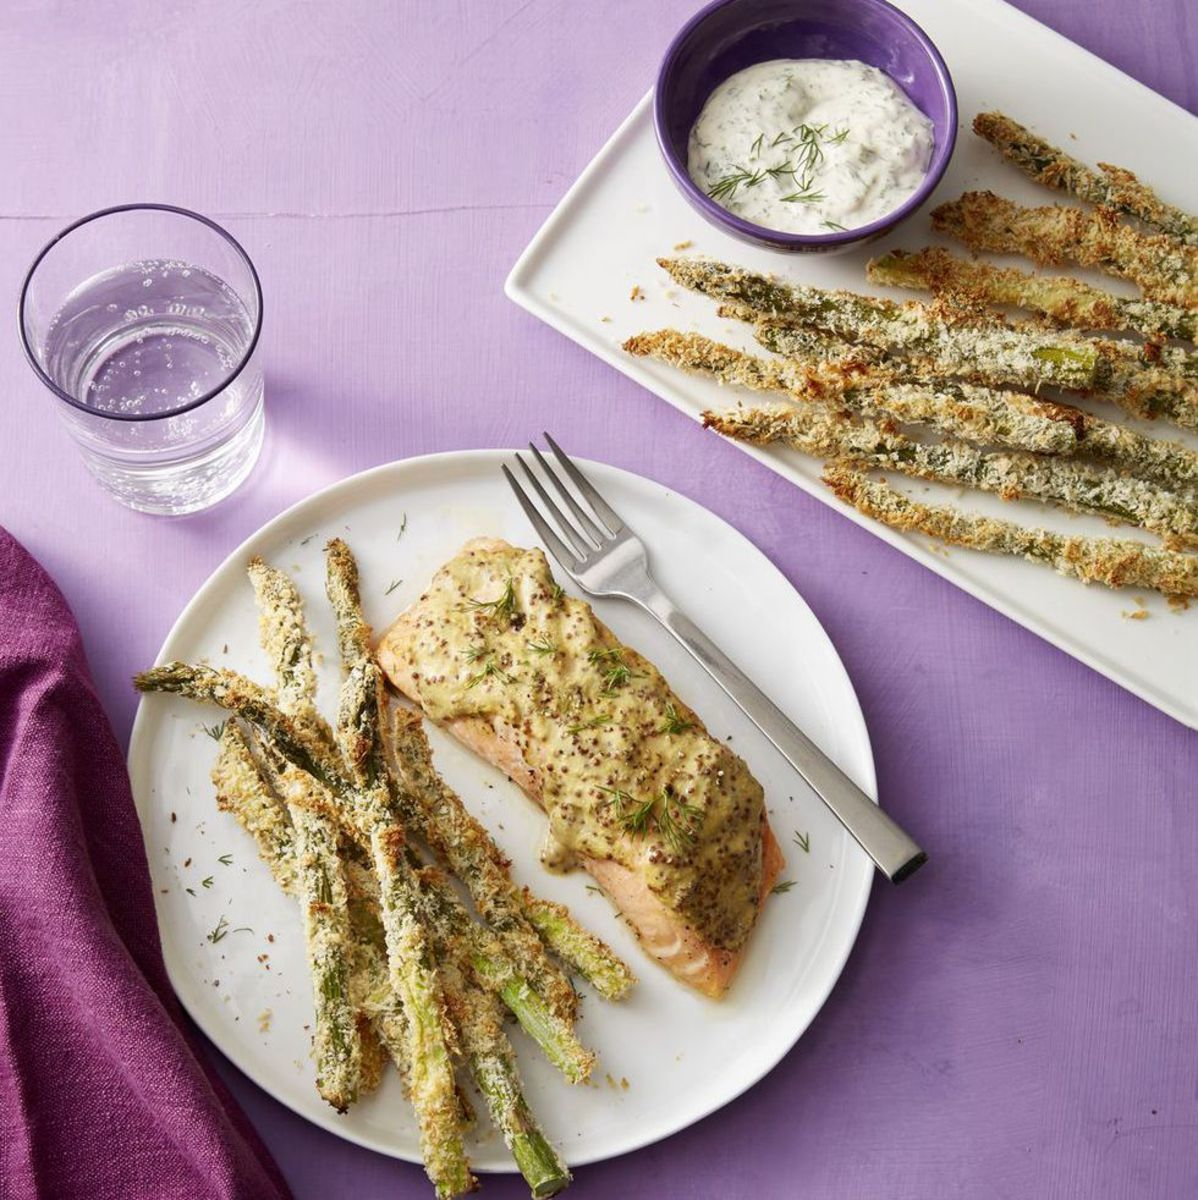 Salmon with a mustard-dill topping along with  crispy asparagus fries is an irresistible side dish.